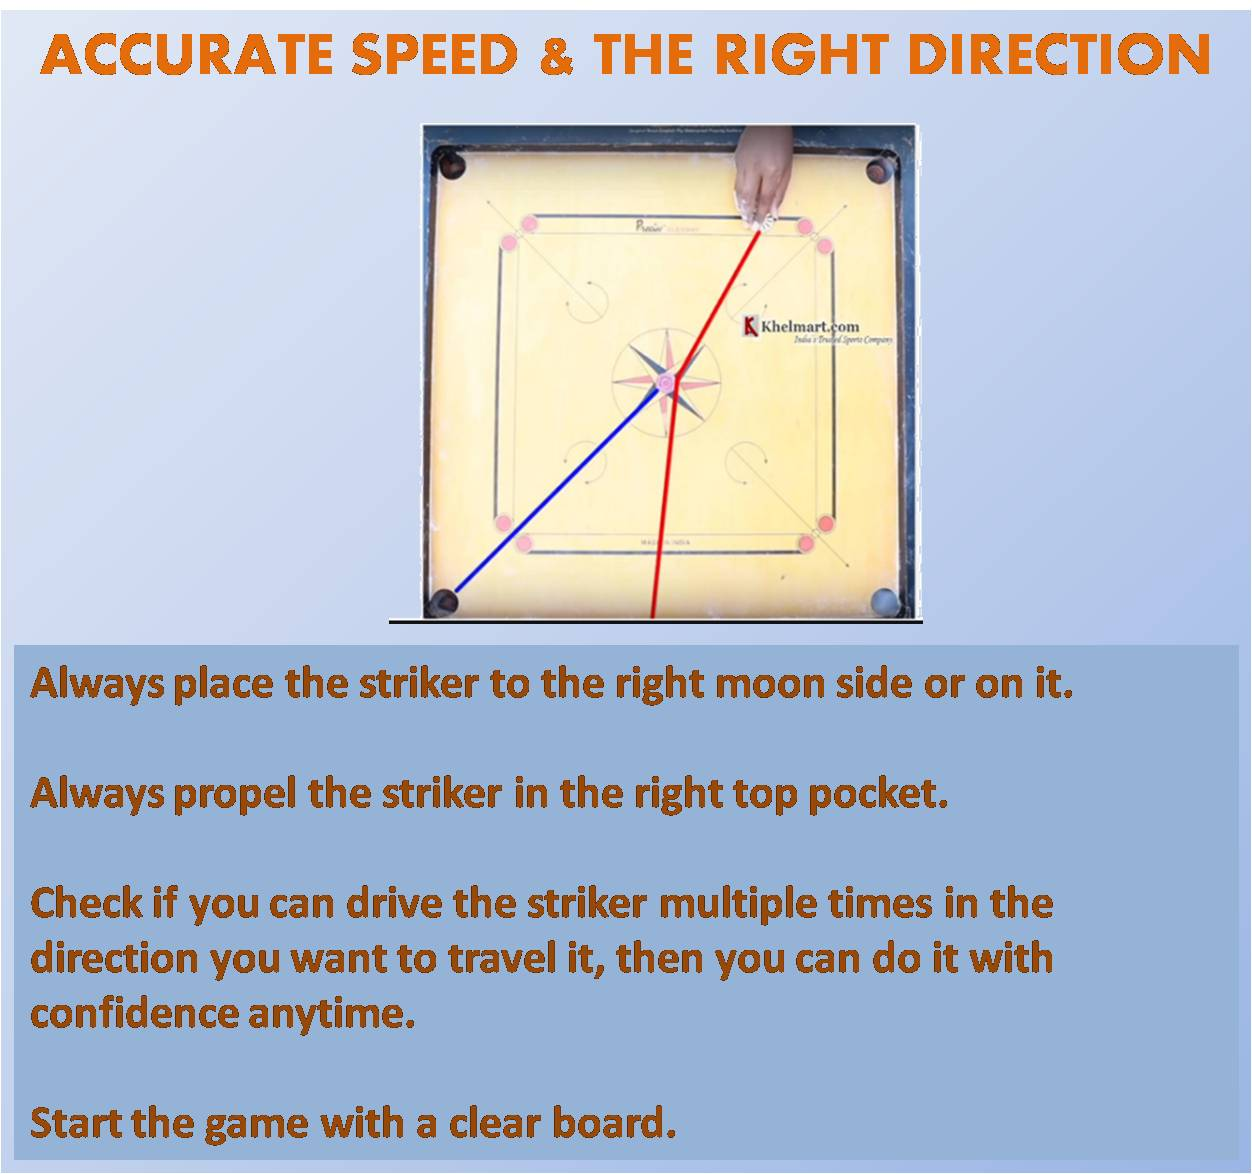 ACCURATE_SPEED_RIGHT_DIRECTION_Carrom_Borad